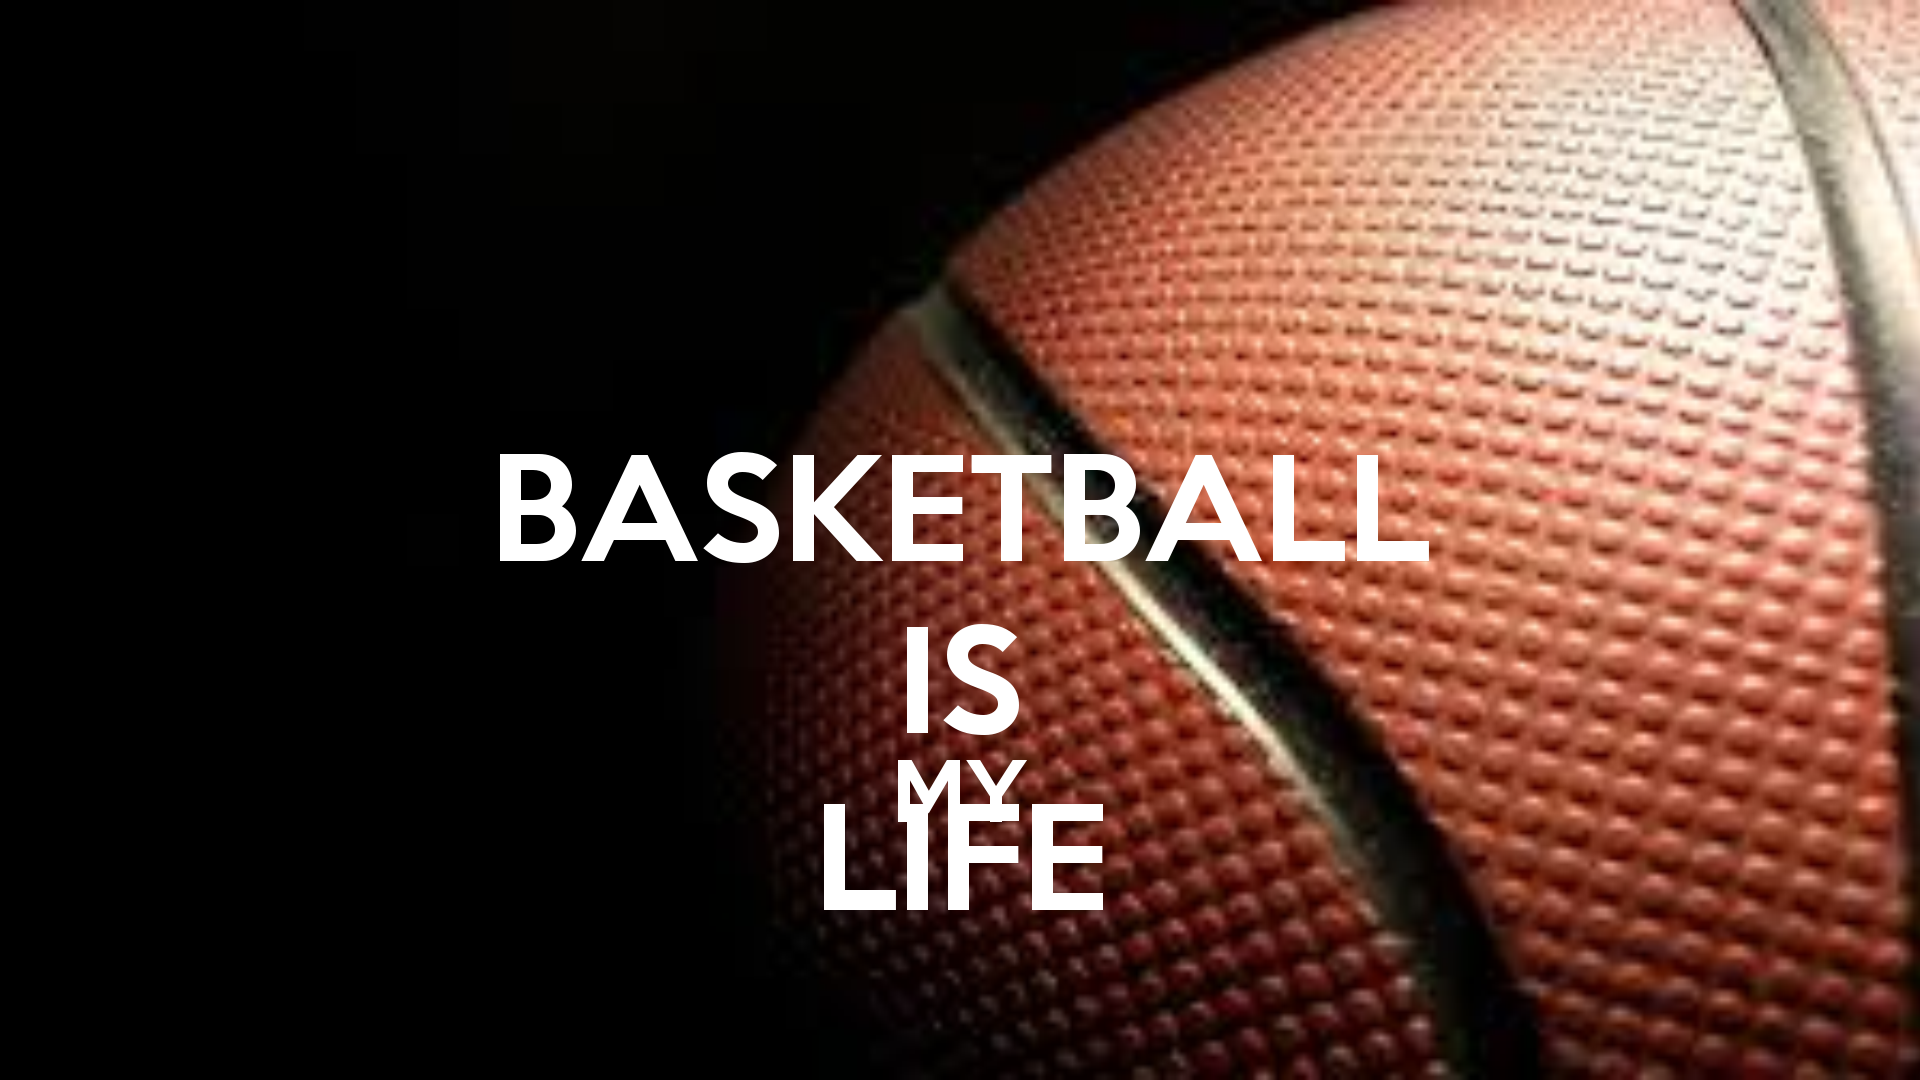 Kentucky Basketball Quotes Quotesgram: Basketball Is My Life Quotes. QuotesGram